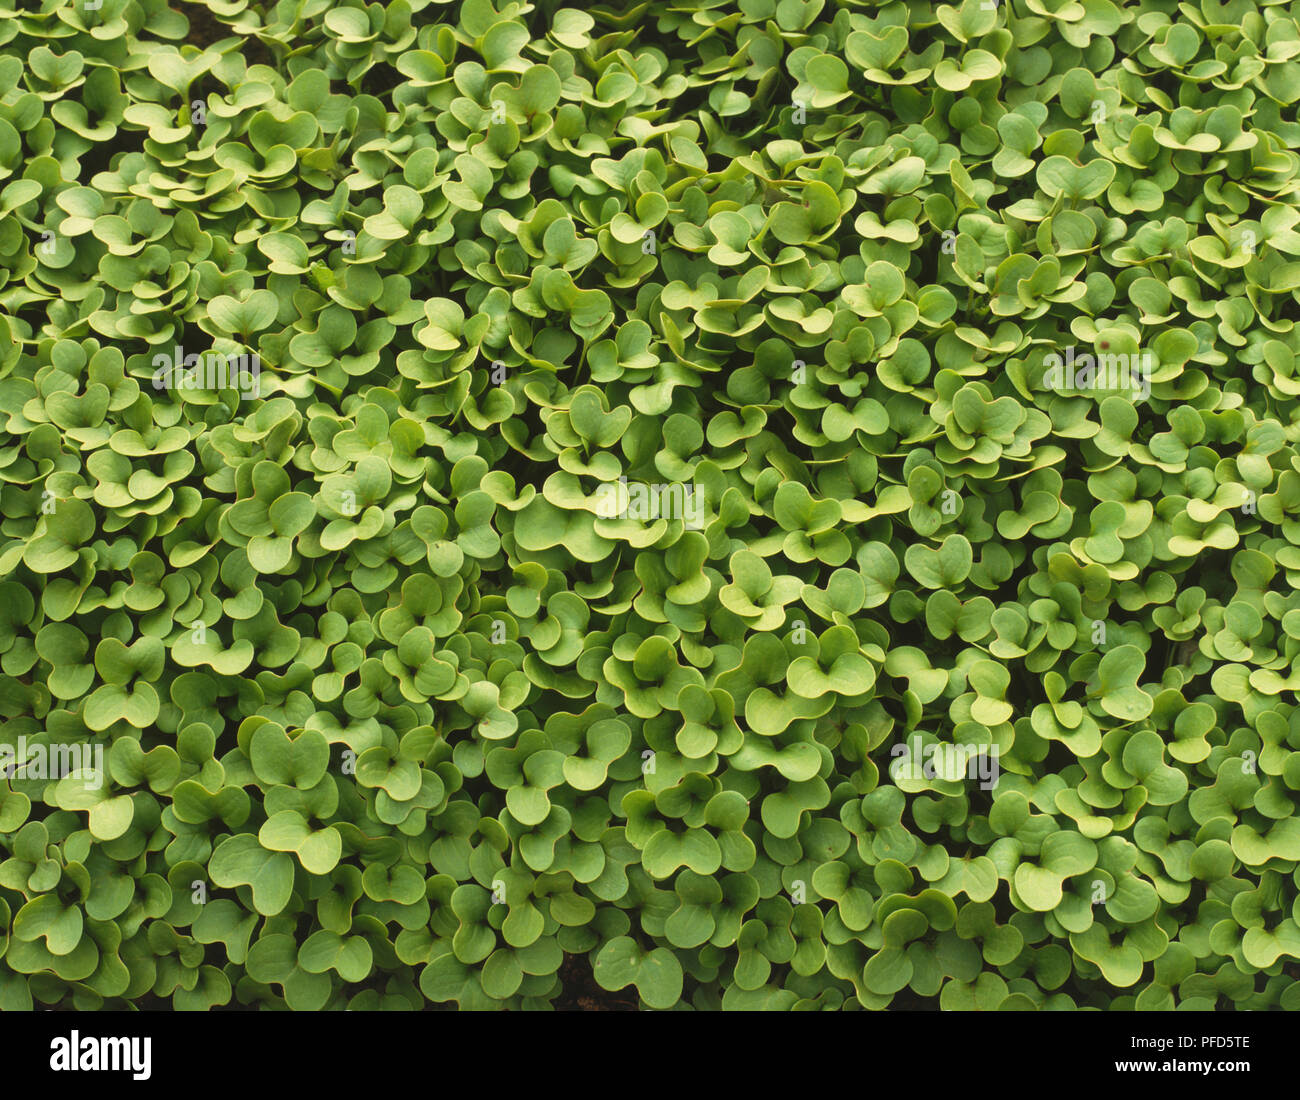 Bed of Brassica hirta, White Mustard, close up, view from above - Stock Image